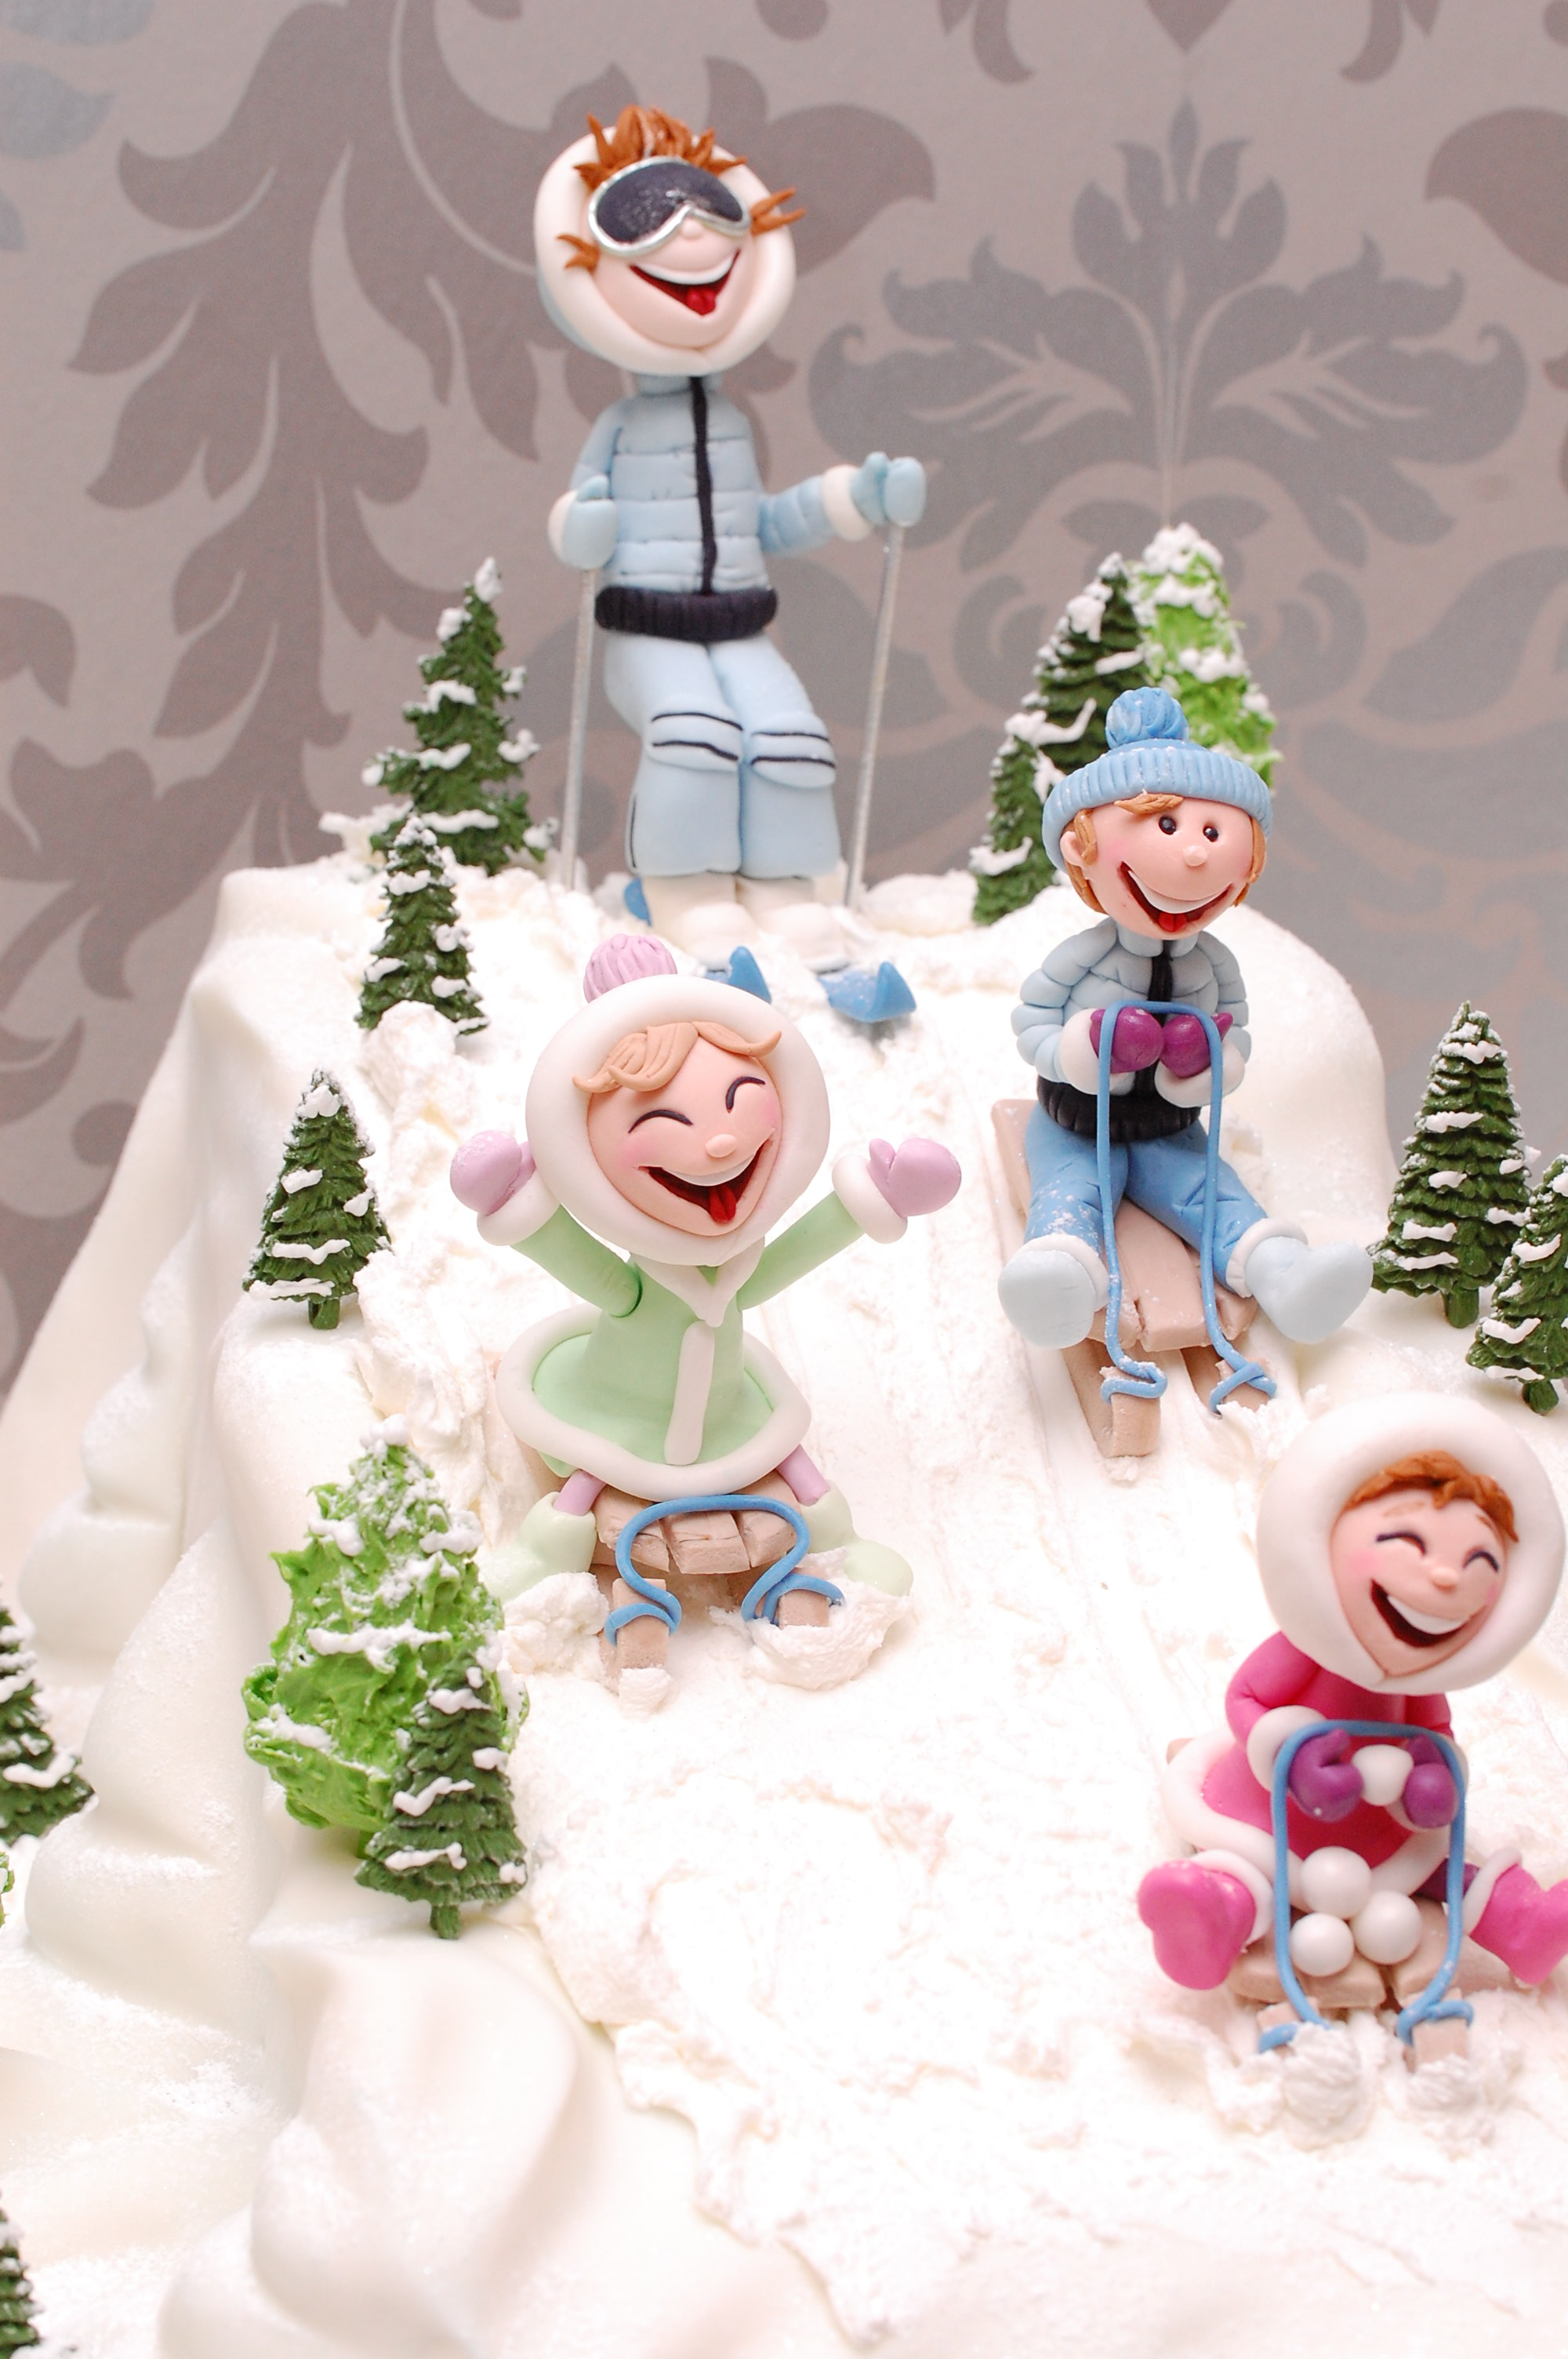 Fondant winter sledding themed birthday cake